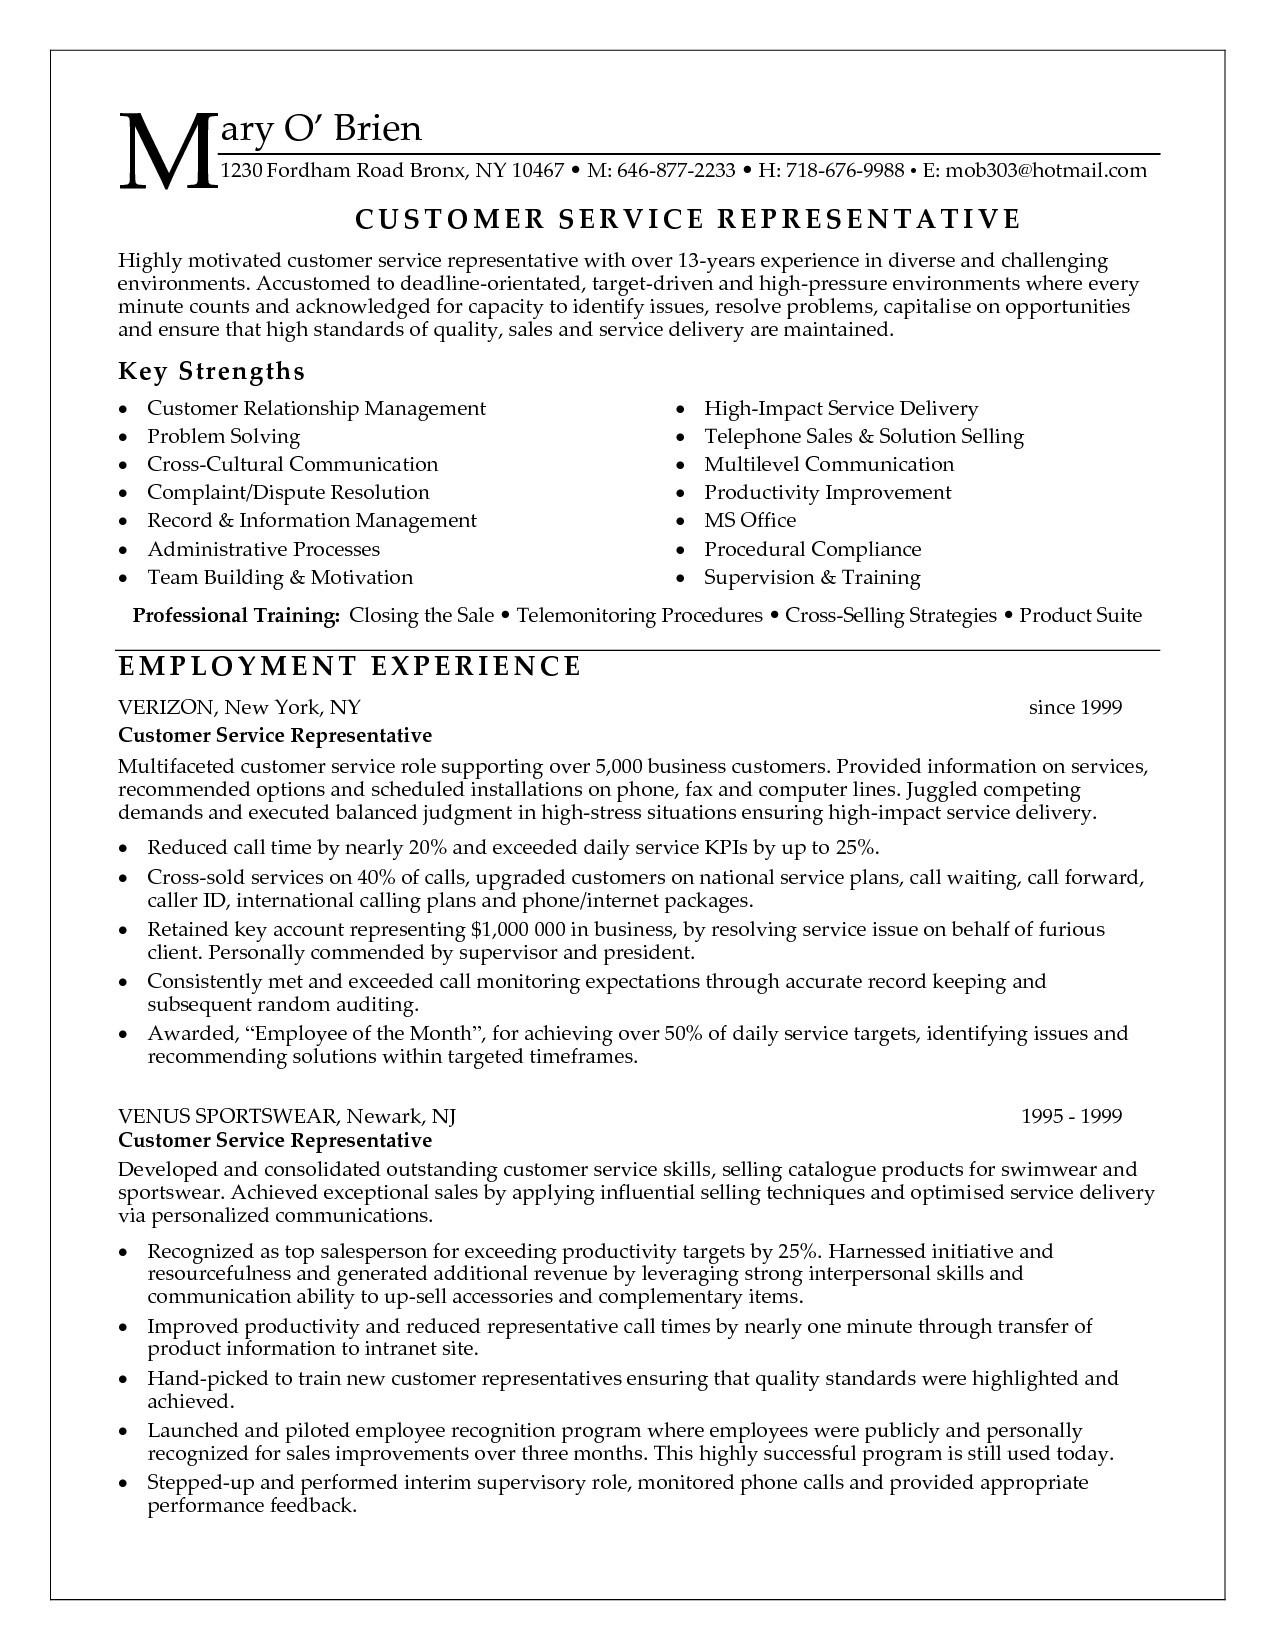 Customer Service Experience Resume - Resume Skills Examples Customer Service Best Best Sample College